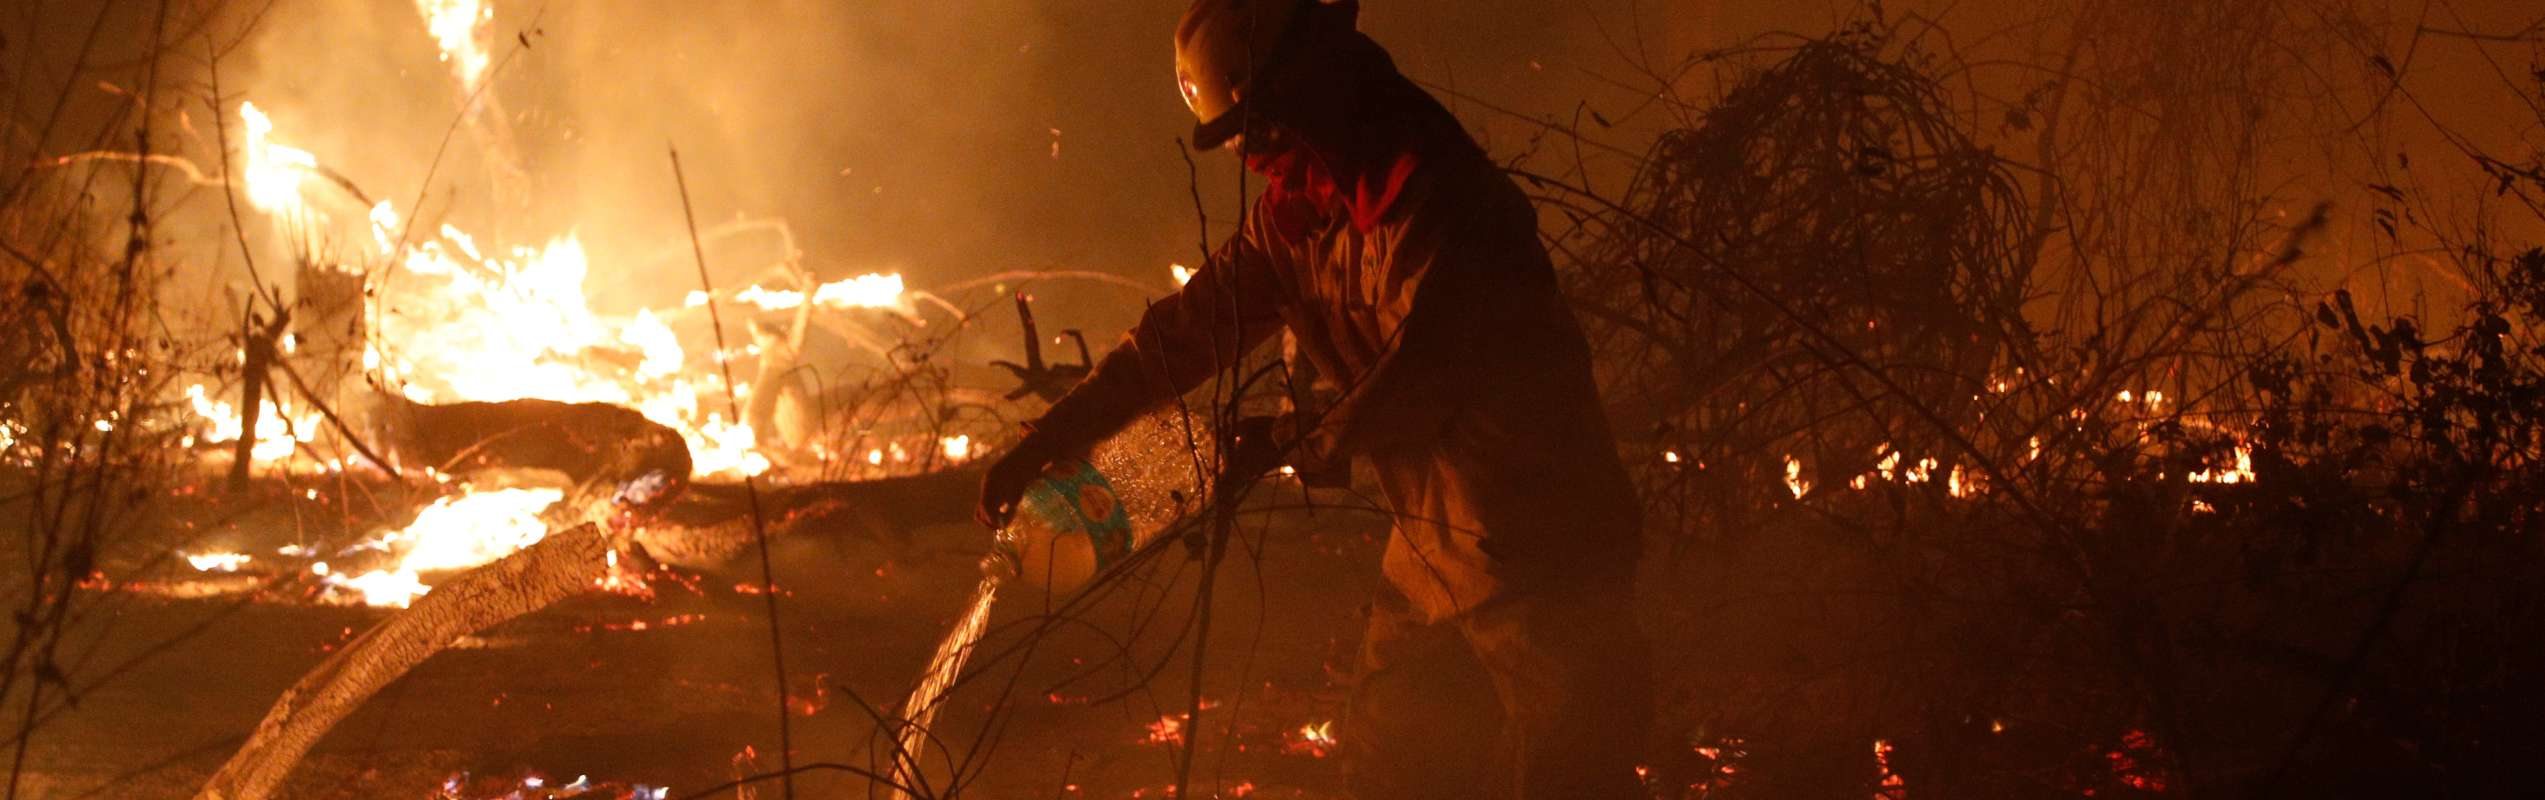 Firefighters tackle the blaze in the Amazon Rainforest